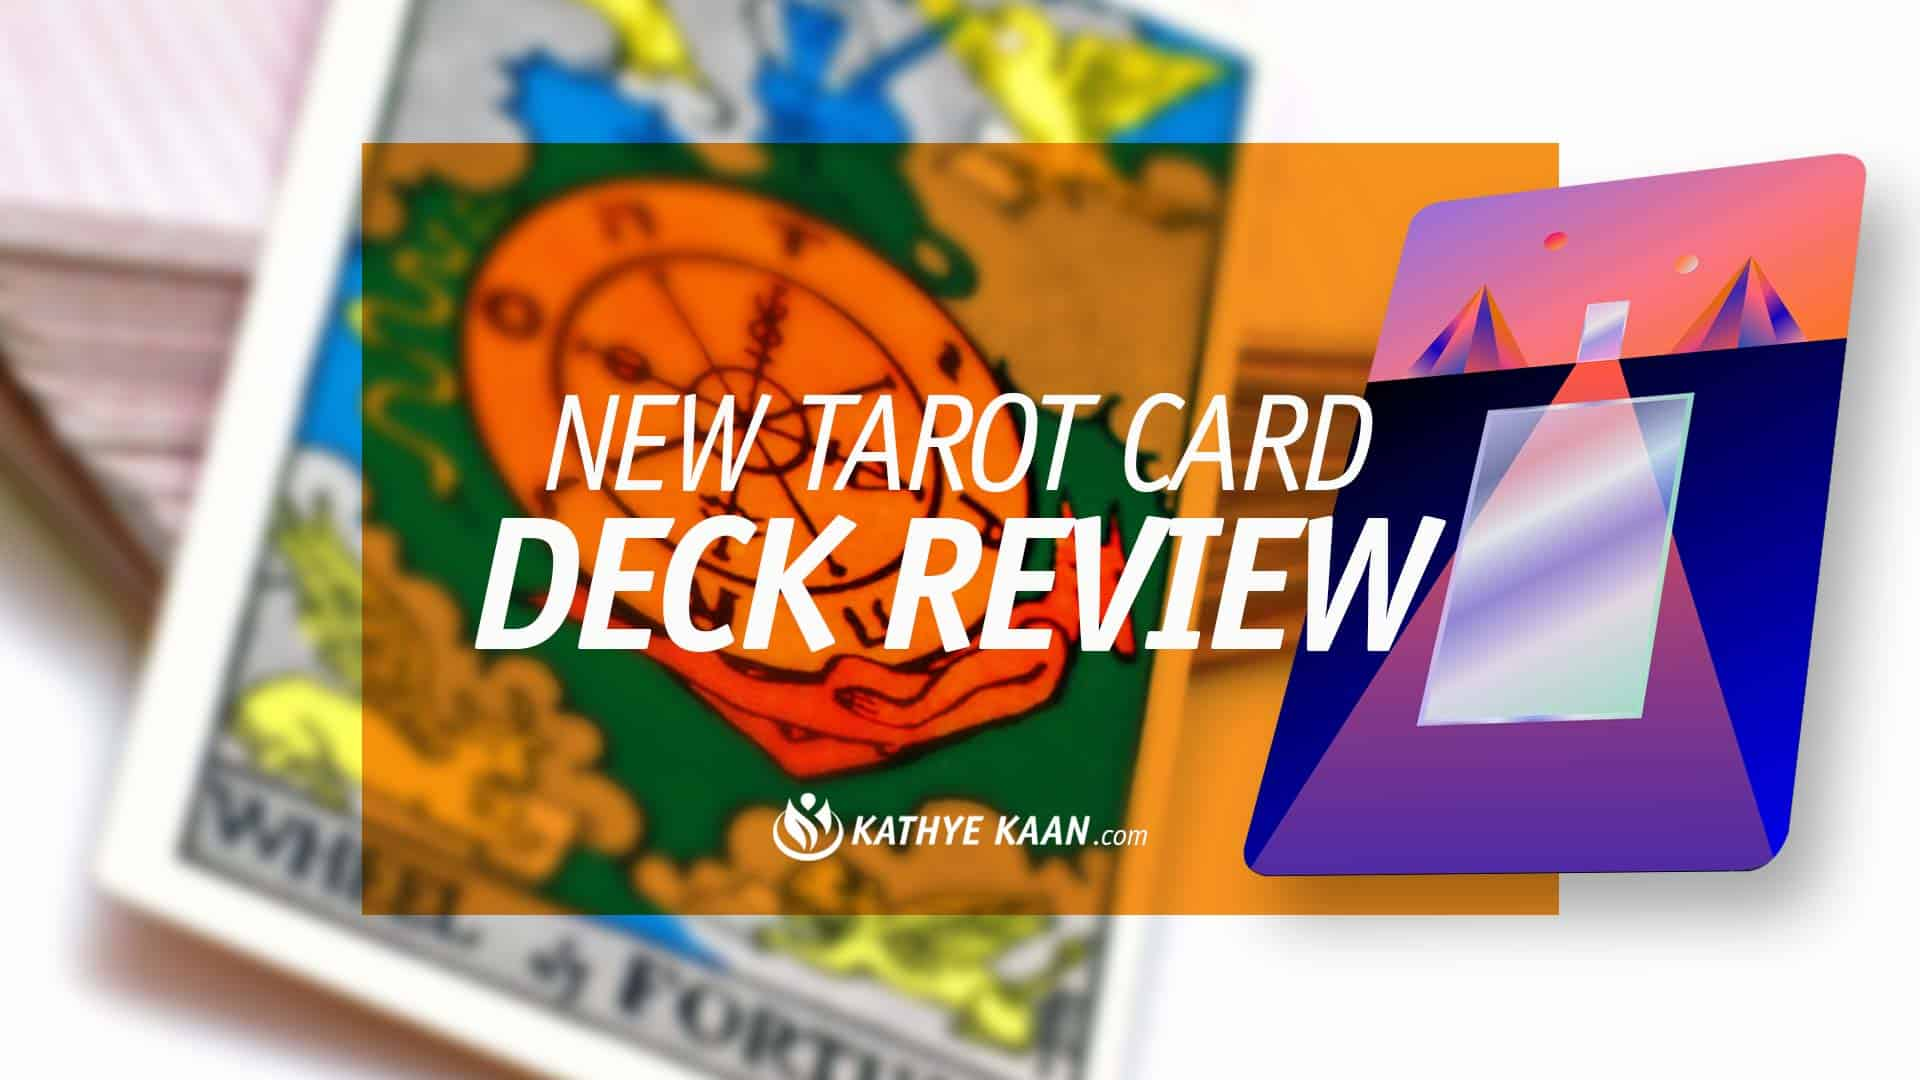 TAROT-CARD-DECK-REVIEW-MYSTIC-MONDAYS-GRACE-DUONG-KATHYE-KAAN